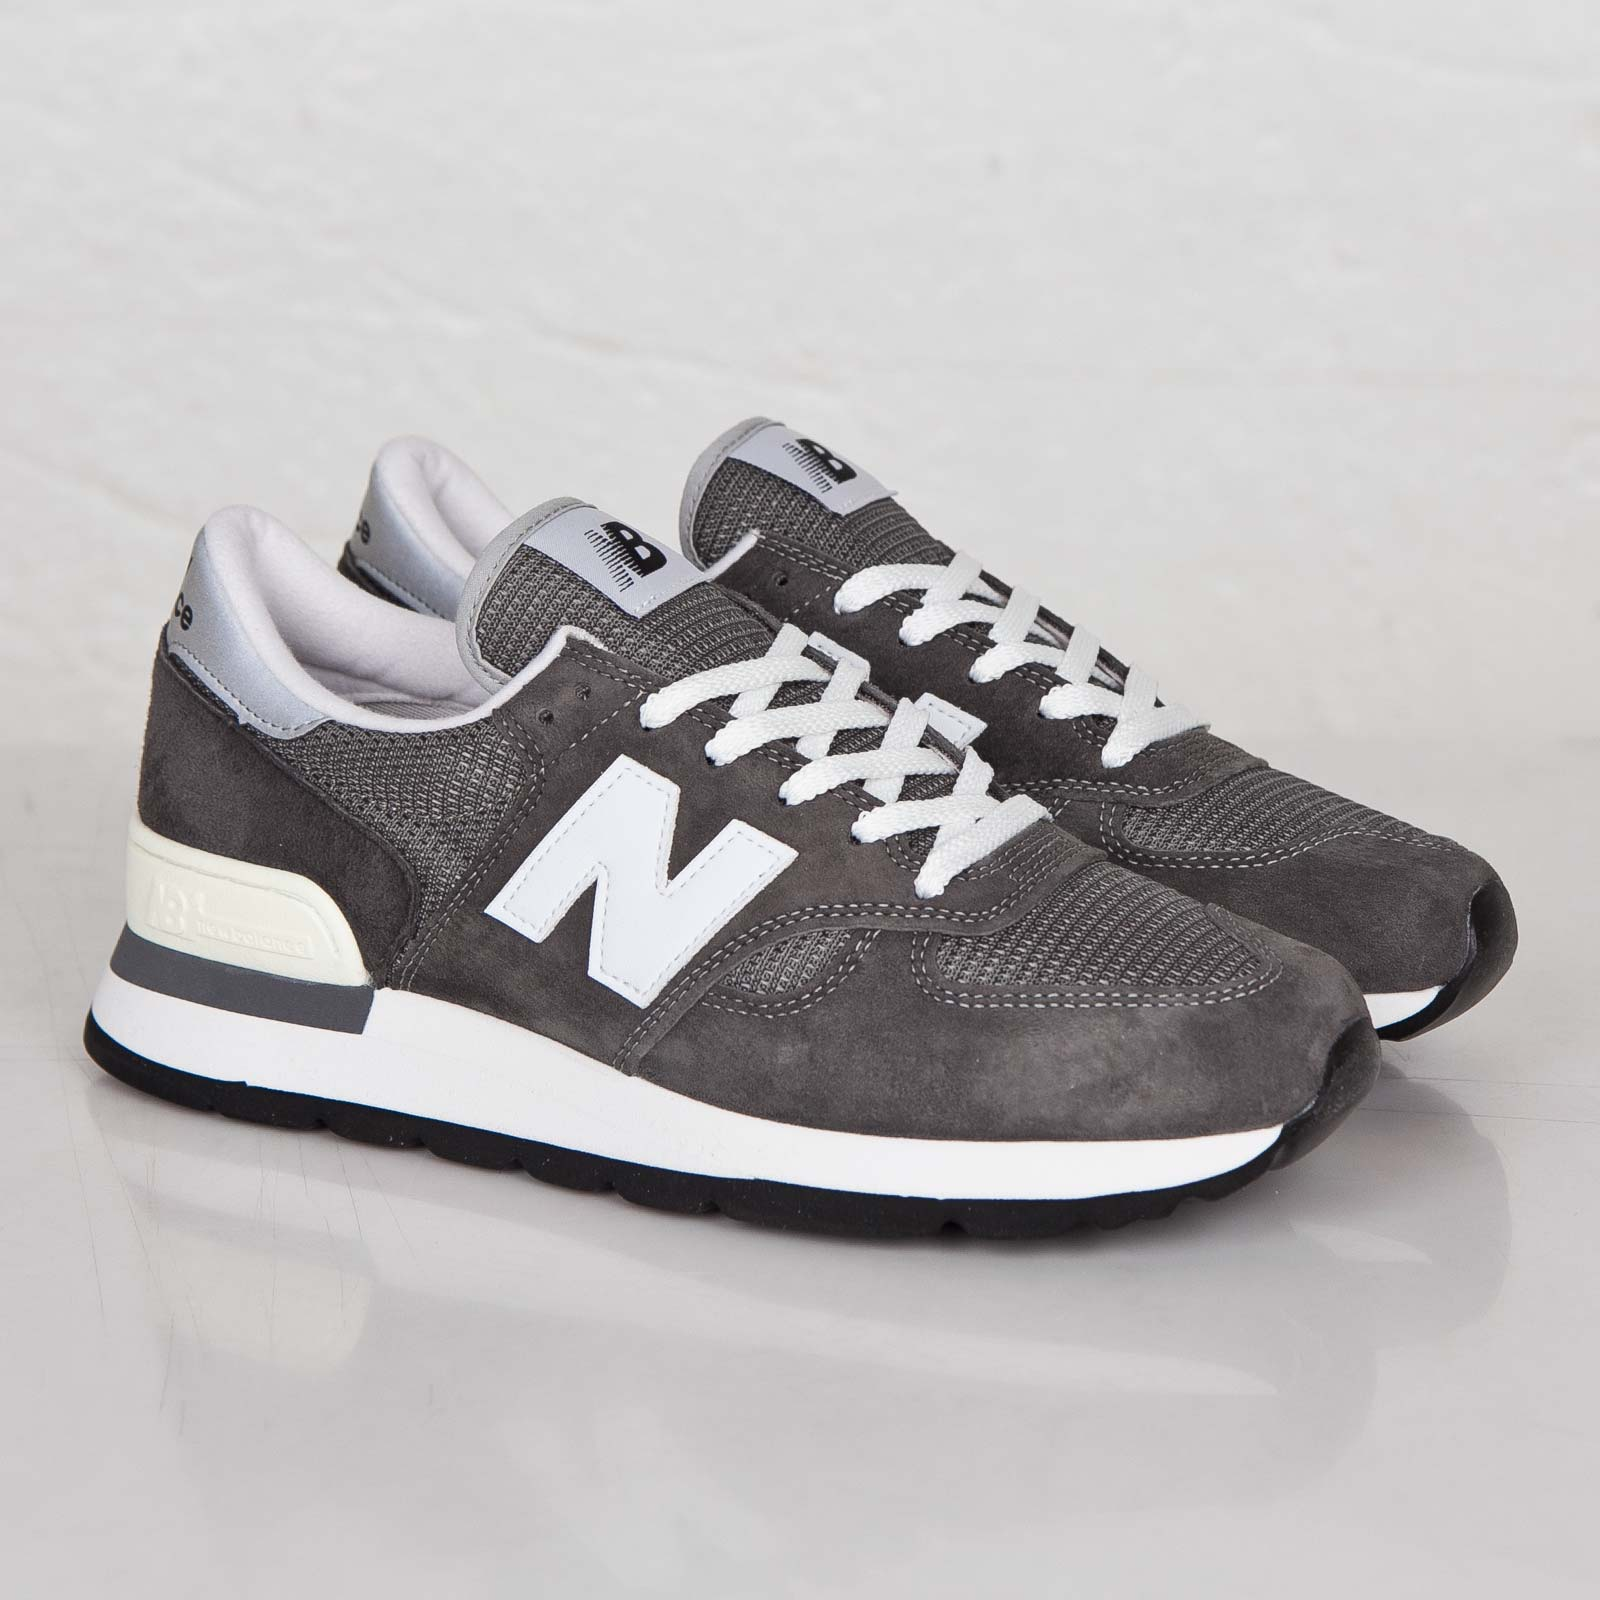 Work Vans For Sale >> New Balance M990 - M990gry - Sneakersnstuff | sneakers ...